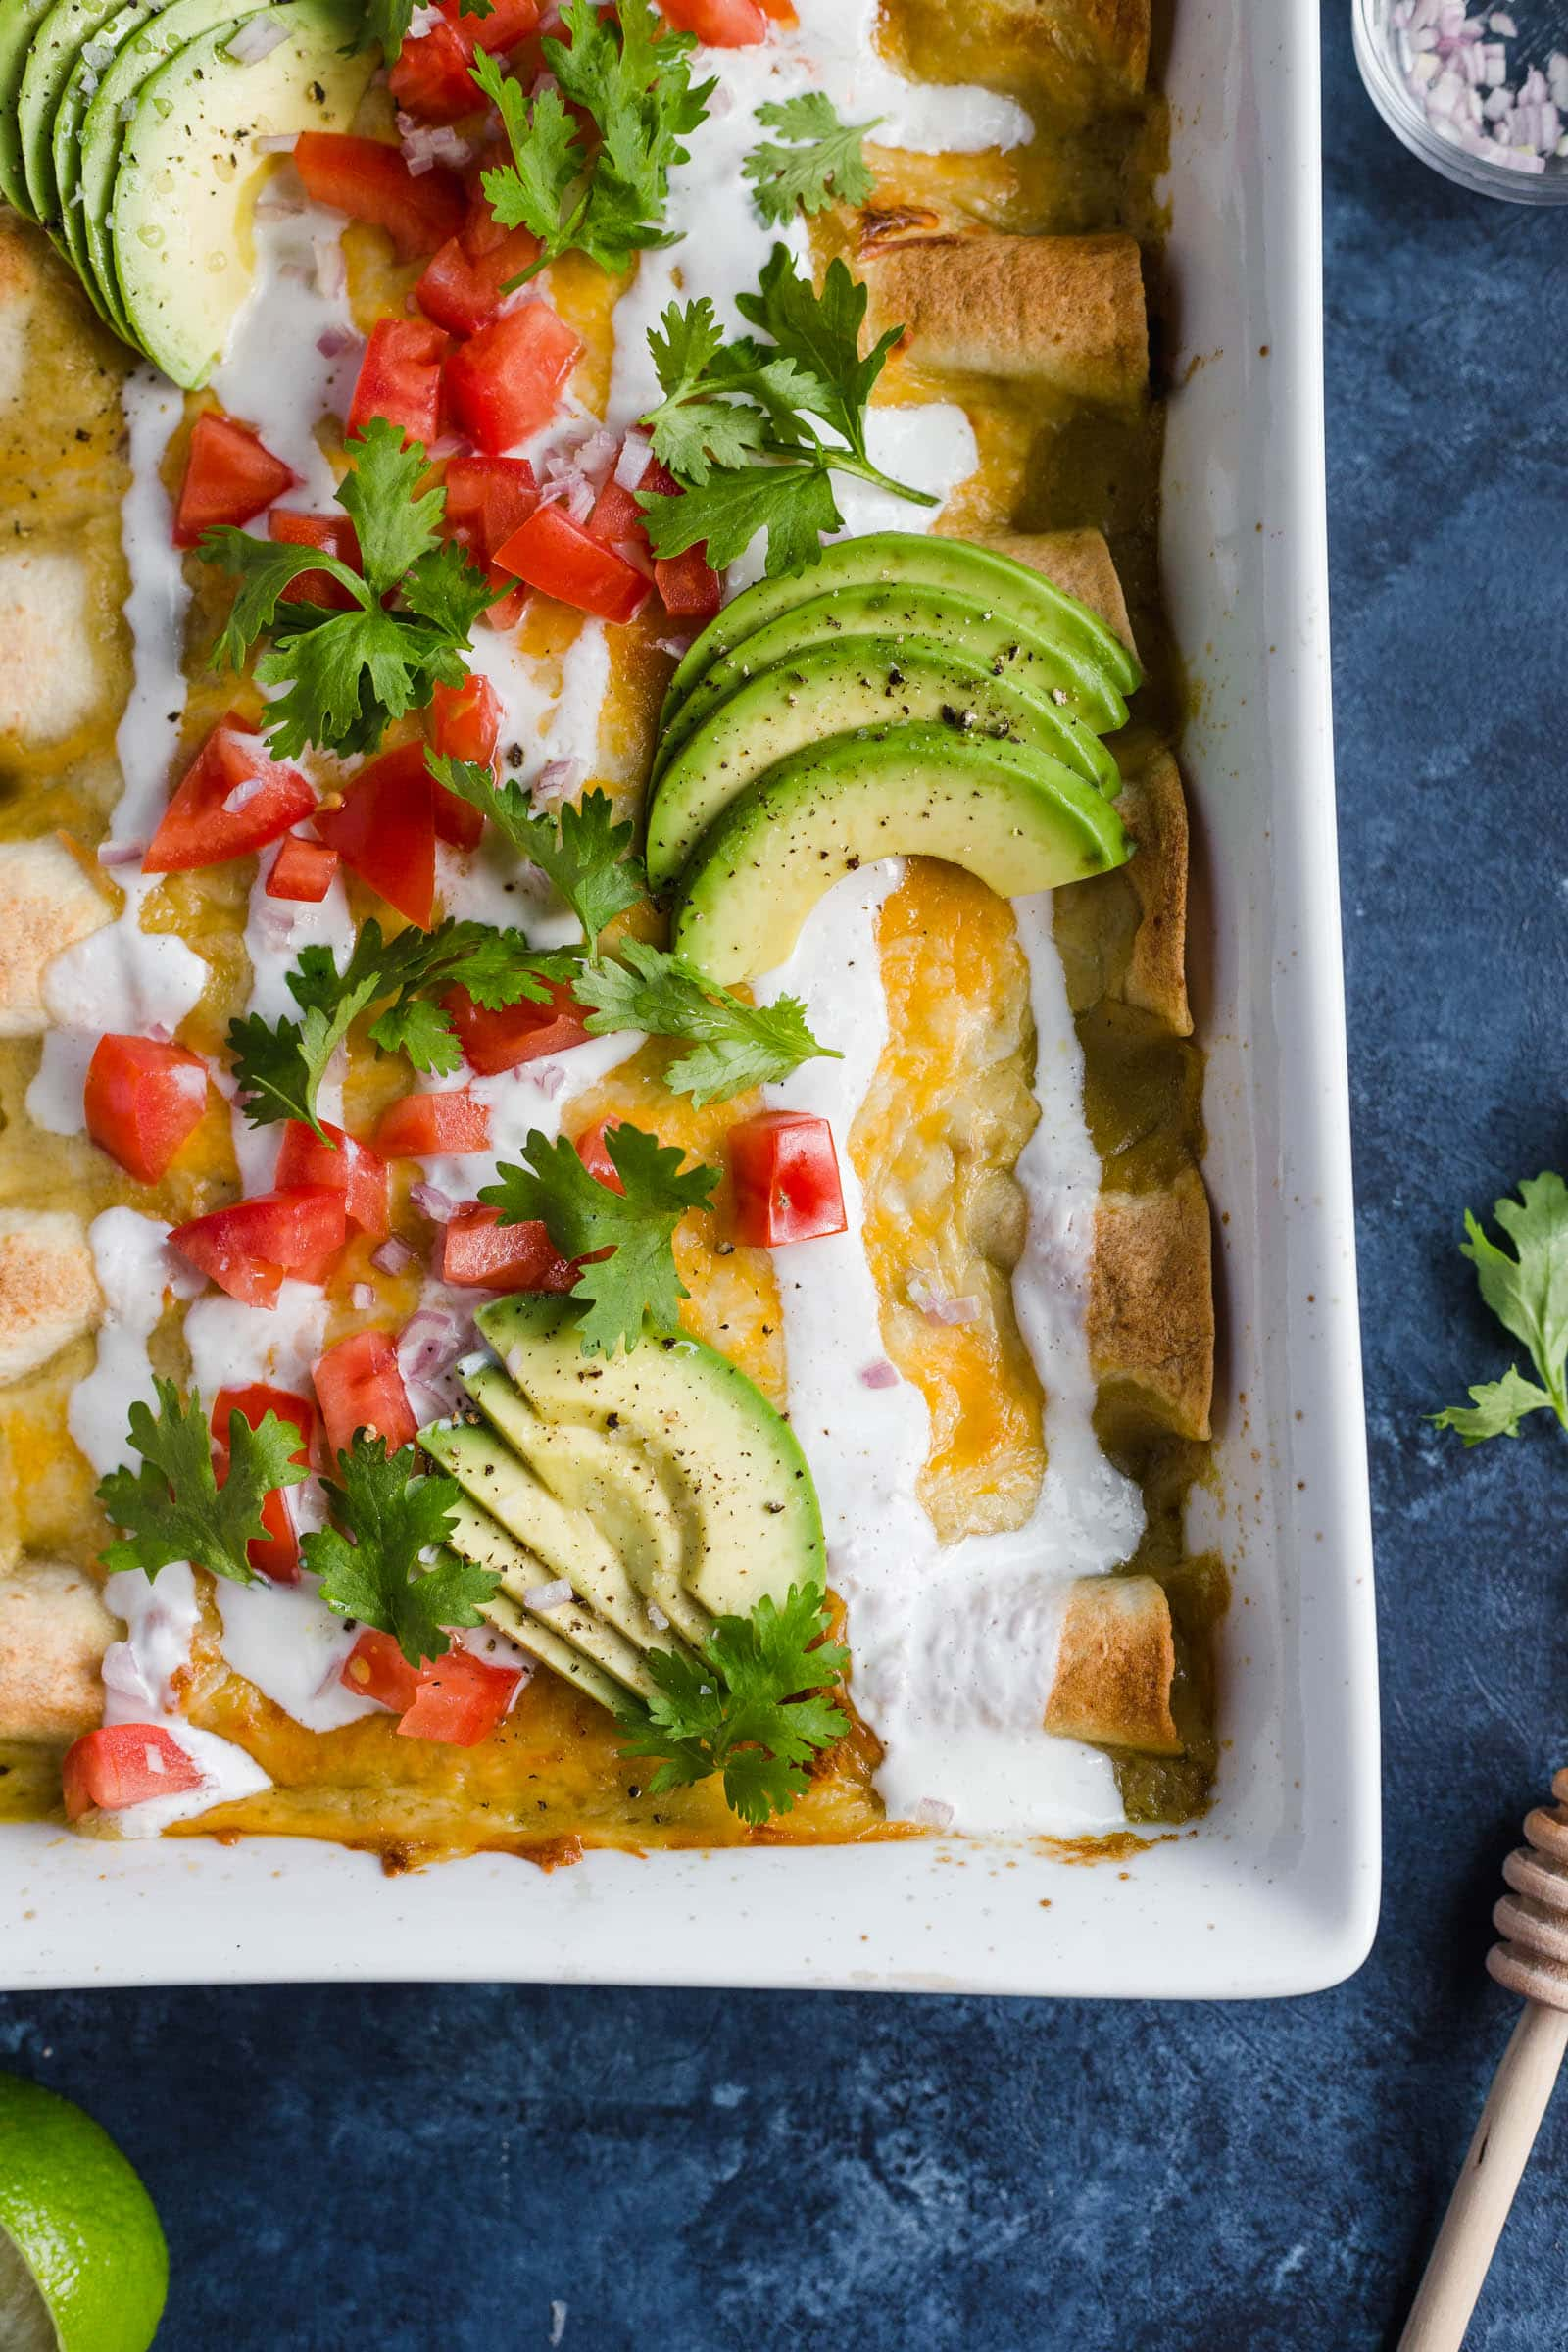 Honey Lime Chicken Enchiladas topped with avocado, tomatoes, and sour cream